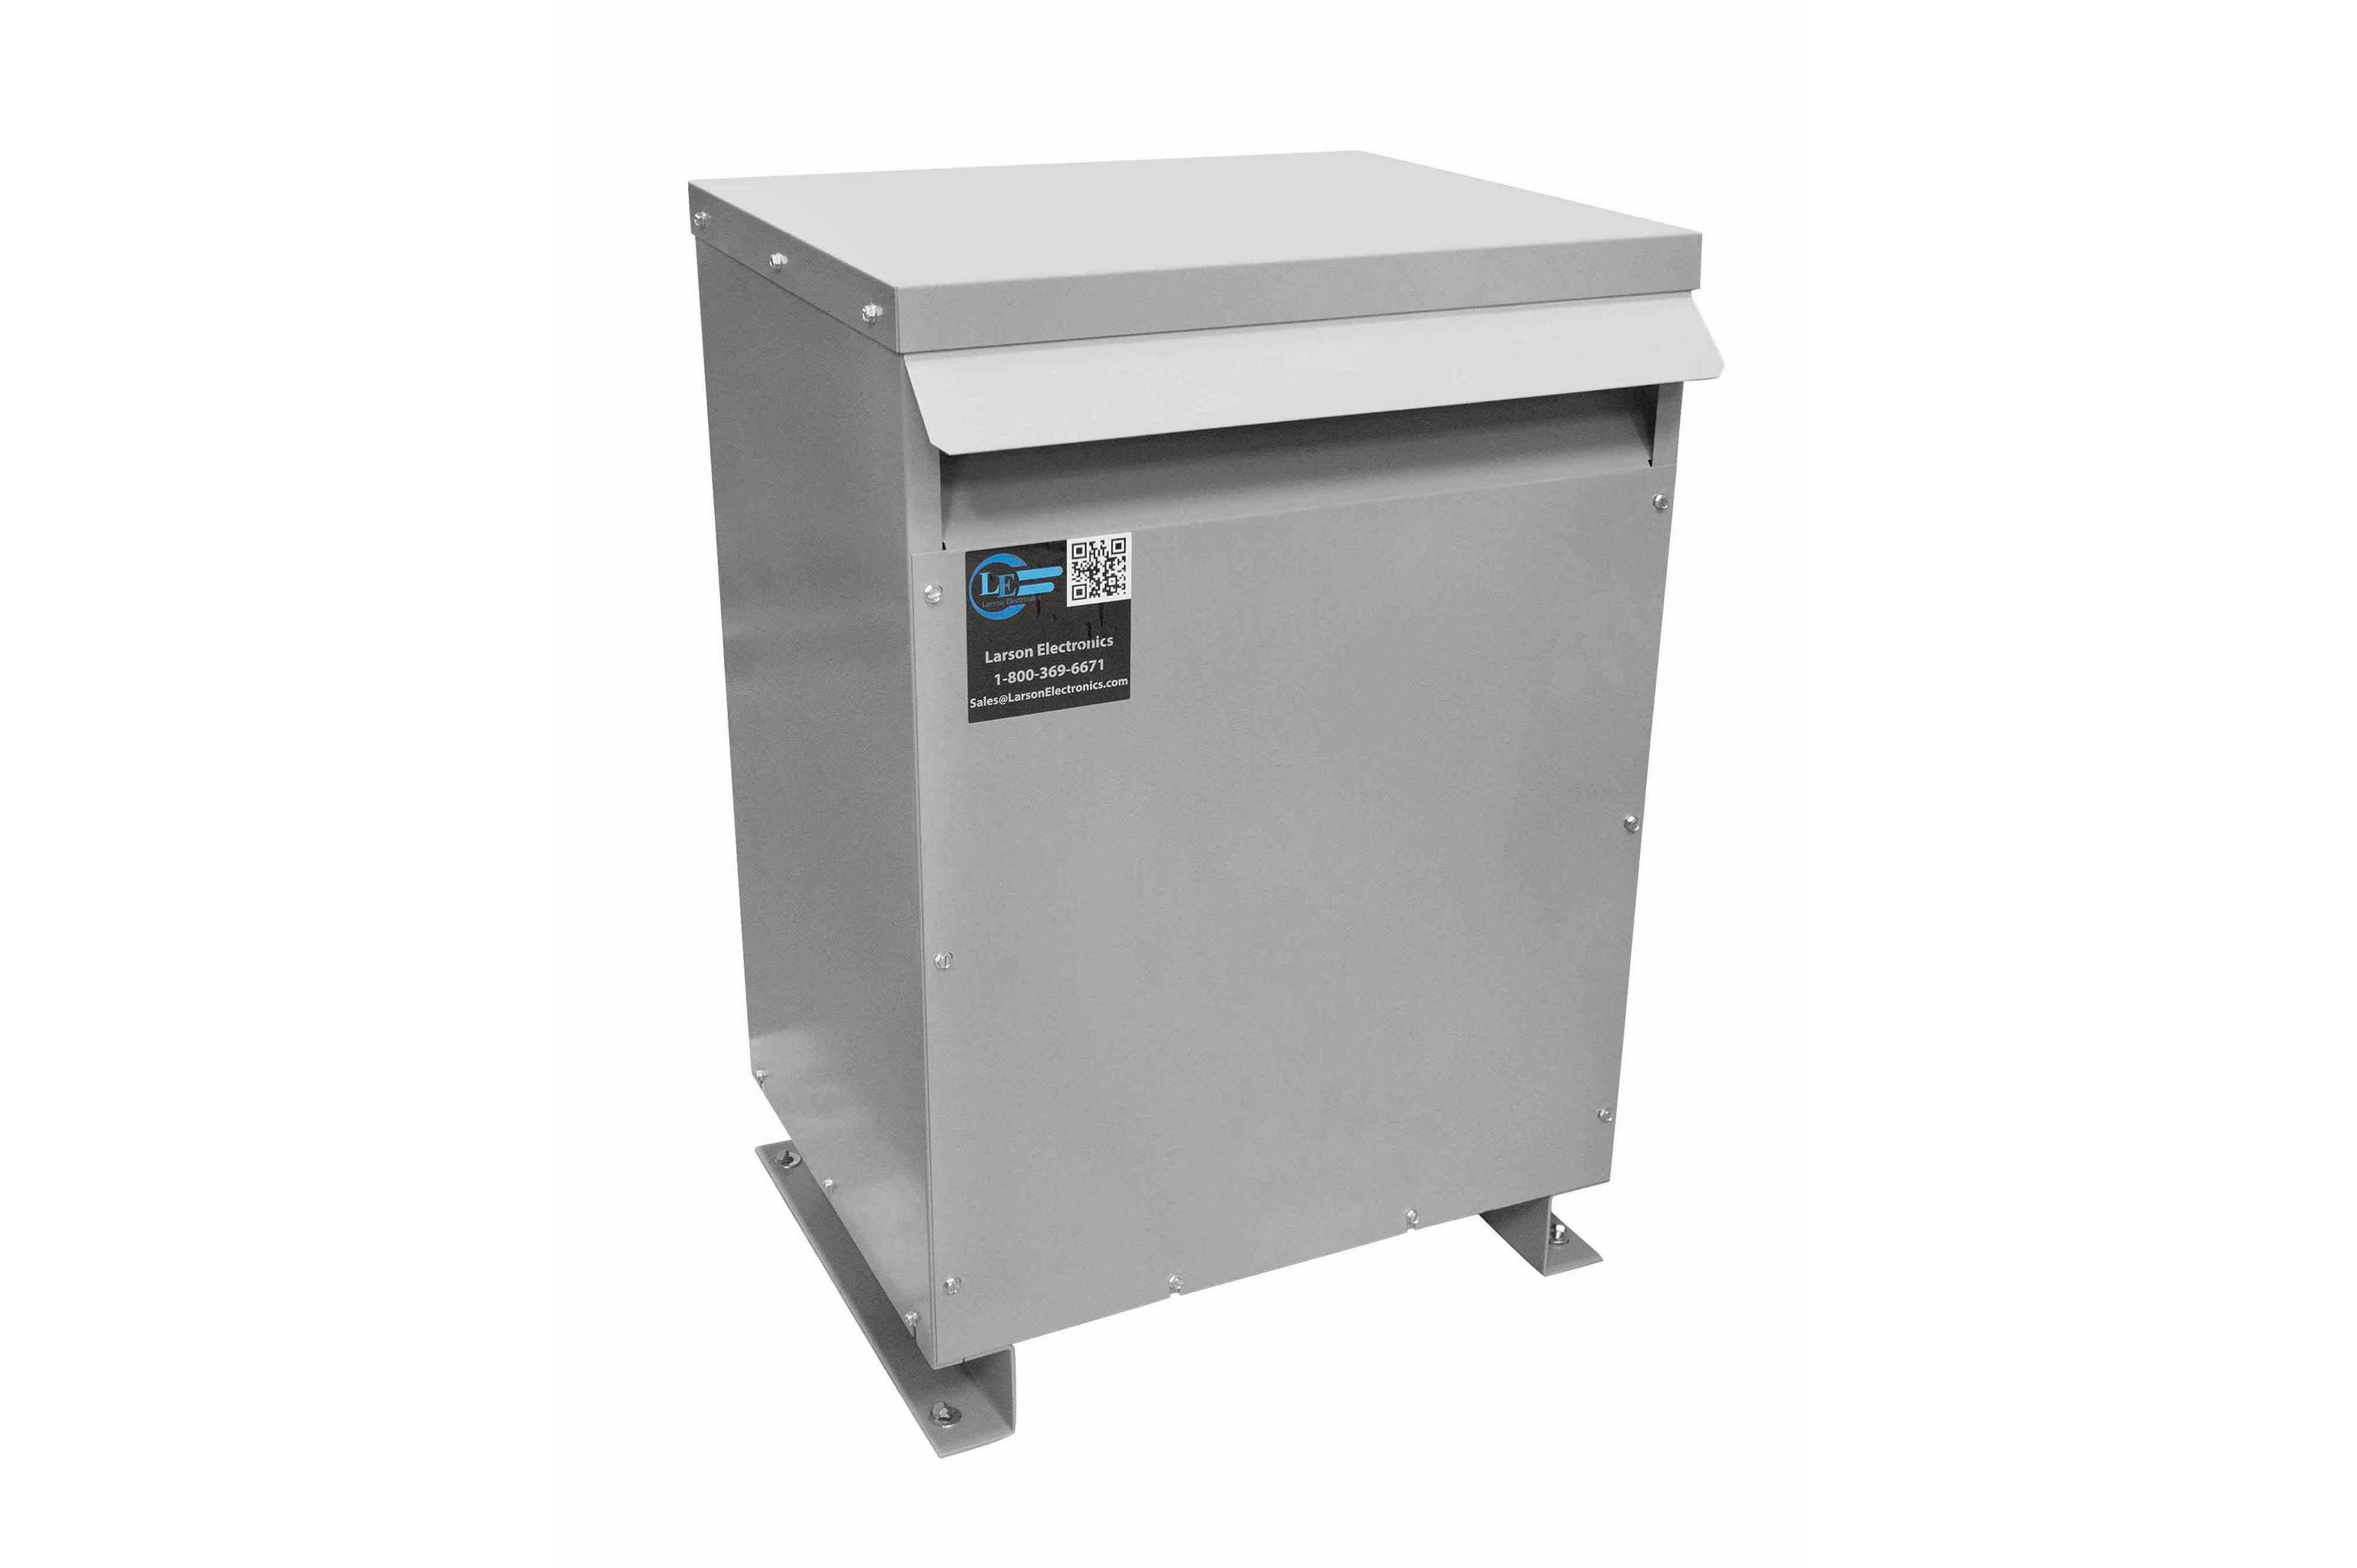 237.5 kVA 3PH Isolation Transformer, 575V Wye Primary, 480Y/277 Wye-N Secondary, N3R, Ventilated, 60 Hz